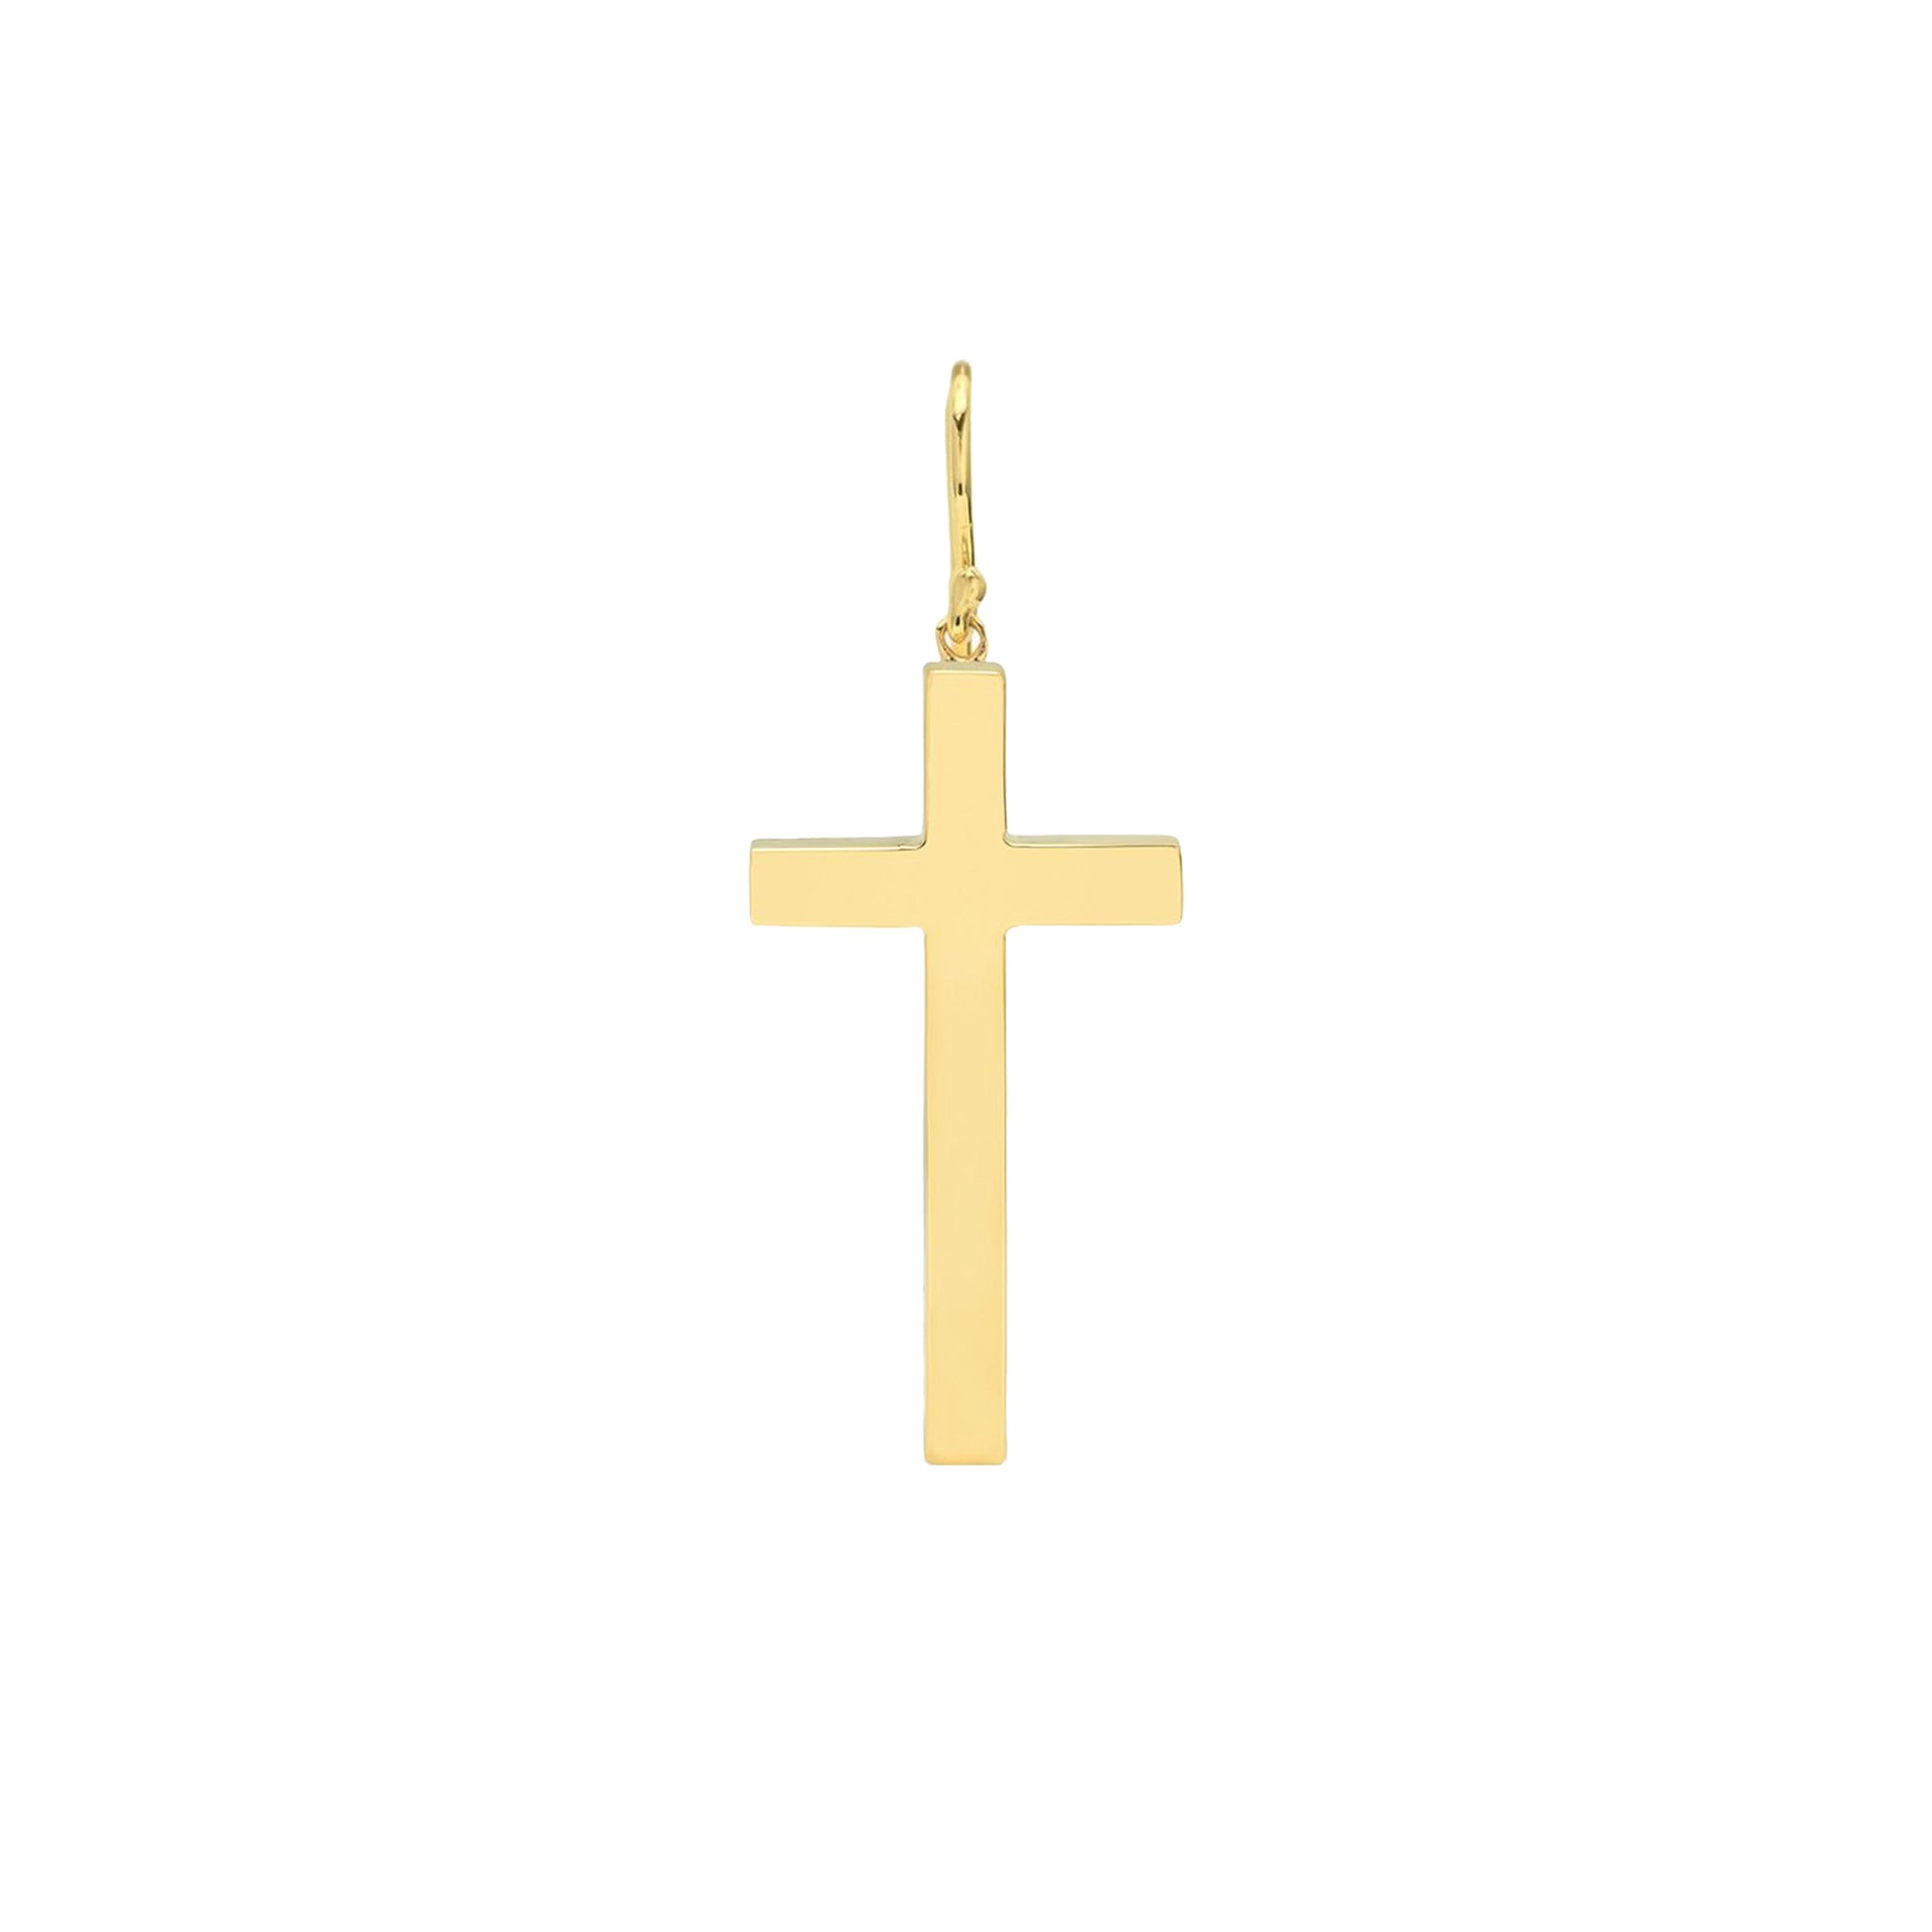 Gold Single Cross Dangle Earring by Established for Broken English Jewelry